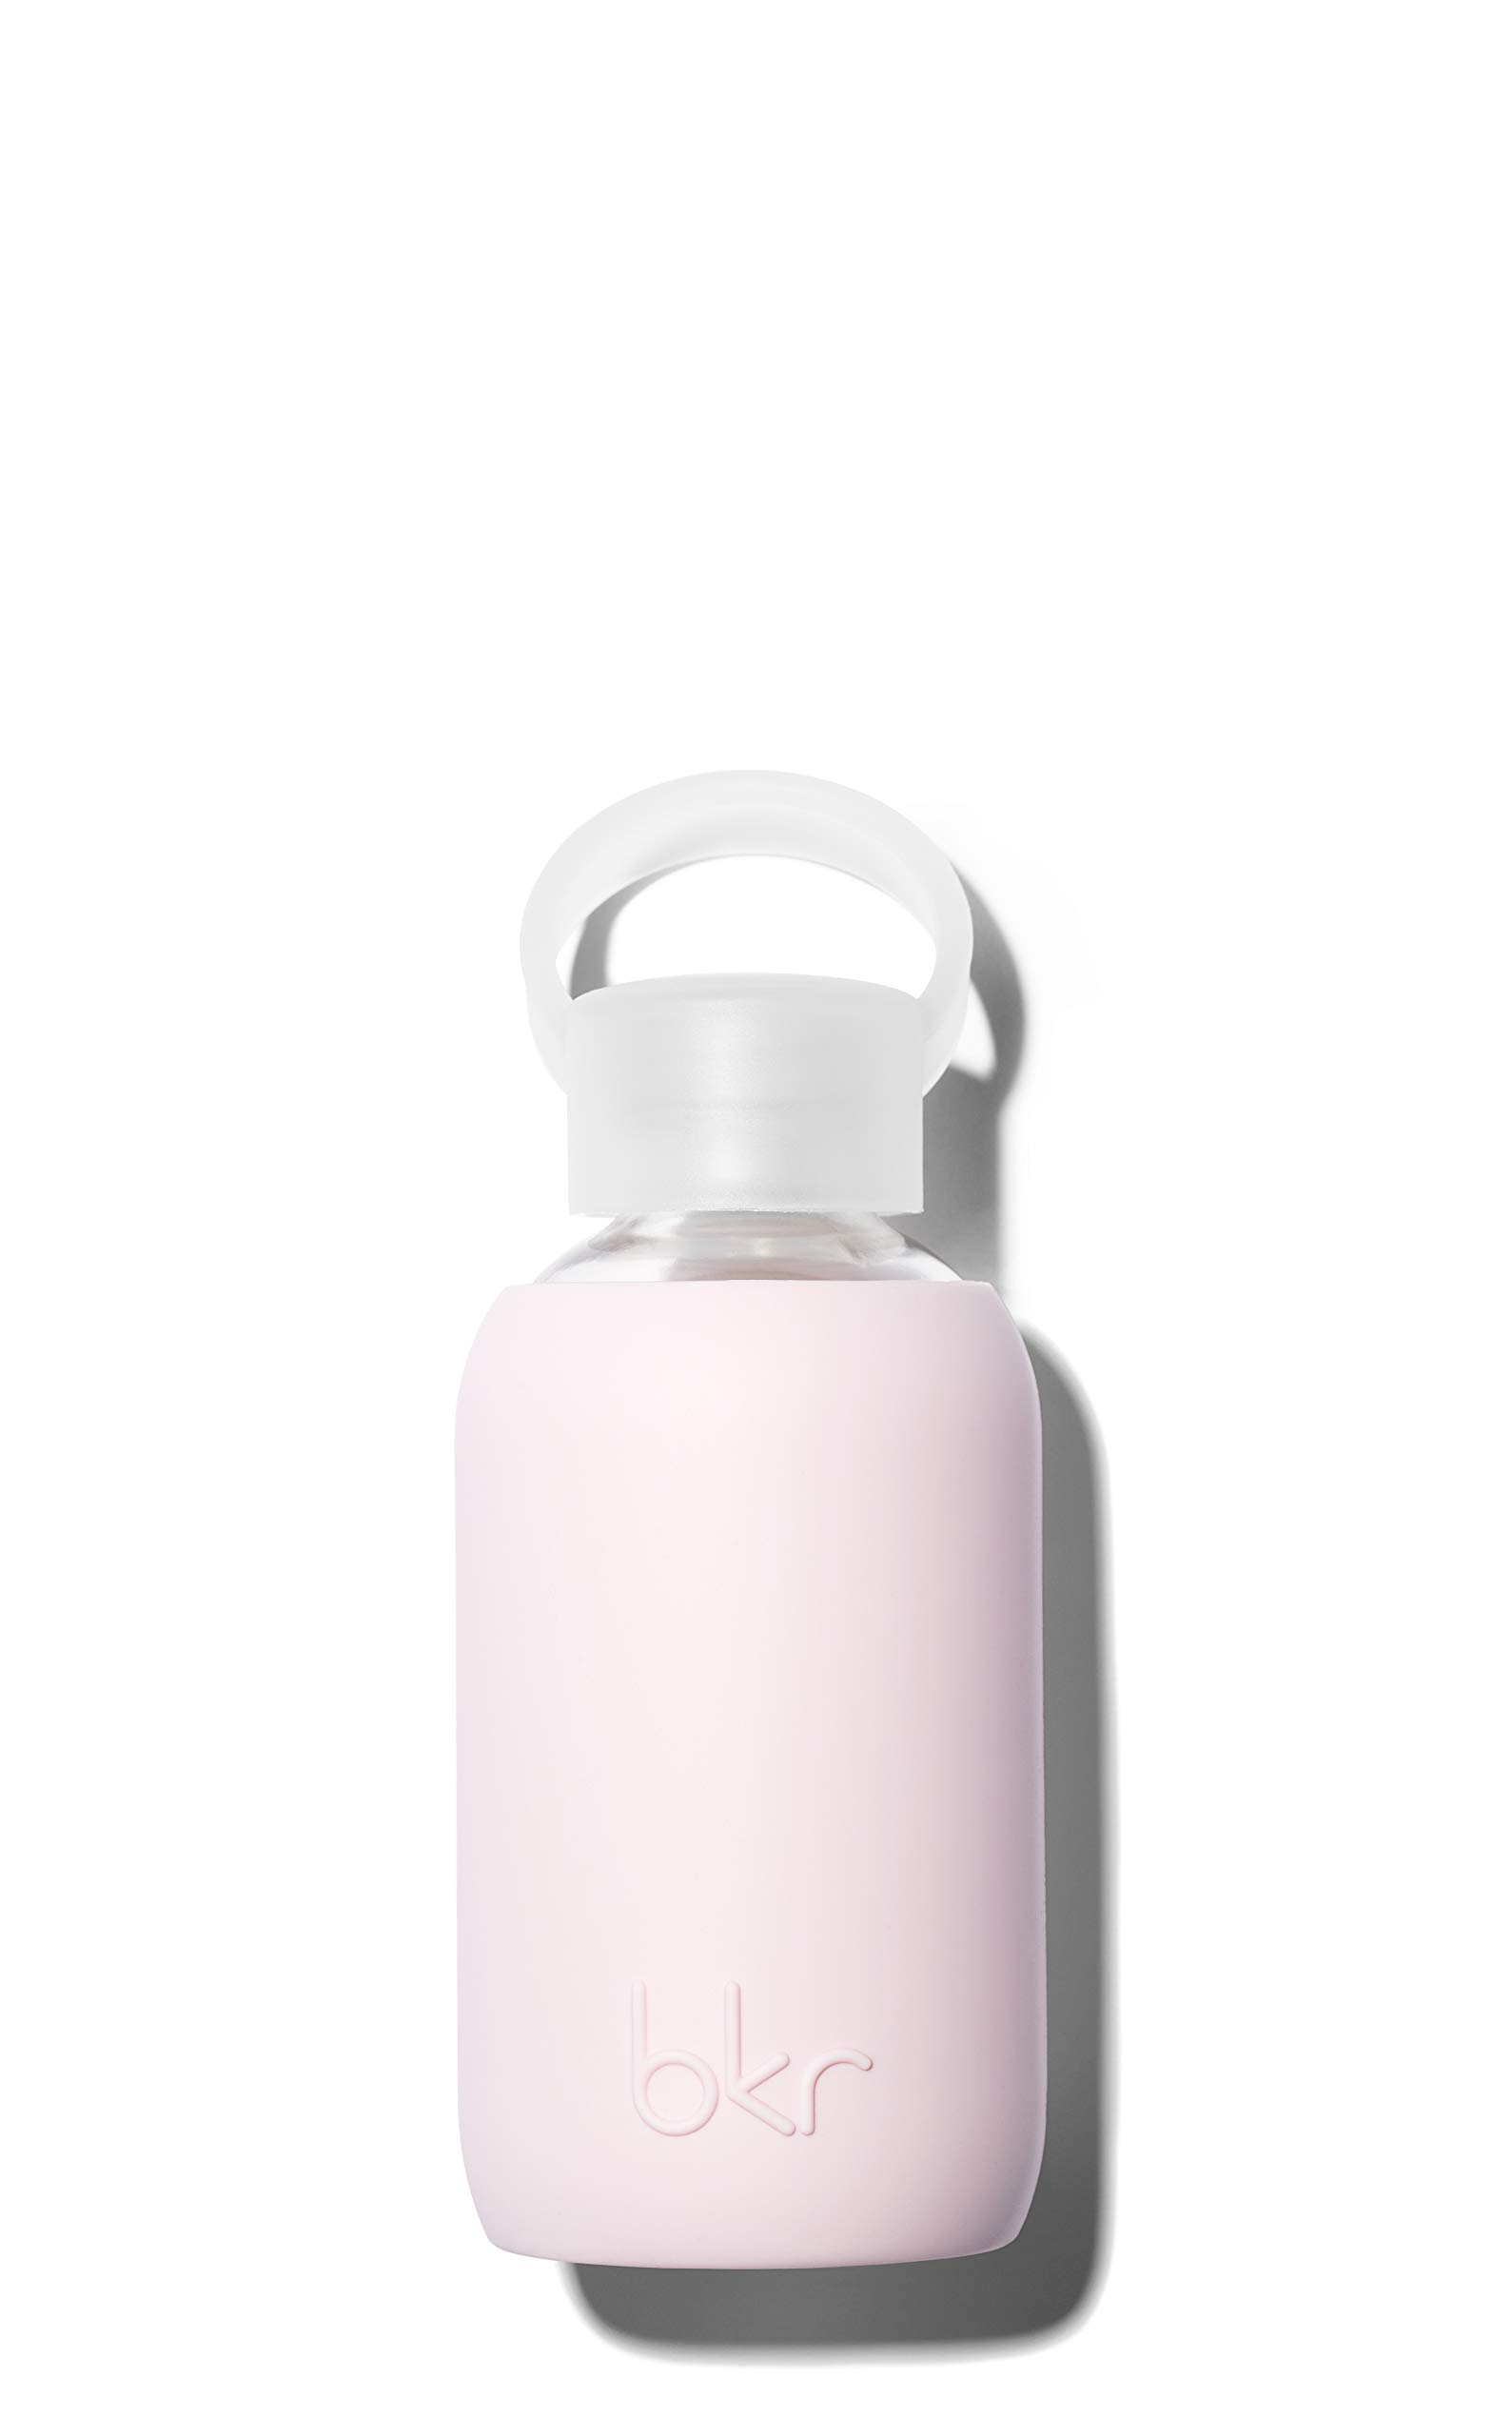 bkr Air Kiss Glass Water Bottle with Smooth Silicone Sleeve for Travel, Narrow Mouth, BPA-Free & Dishwasher Safe, Opaque Socialite Sweetheart Pink, 8 oz / 250 mL